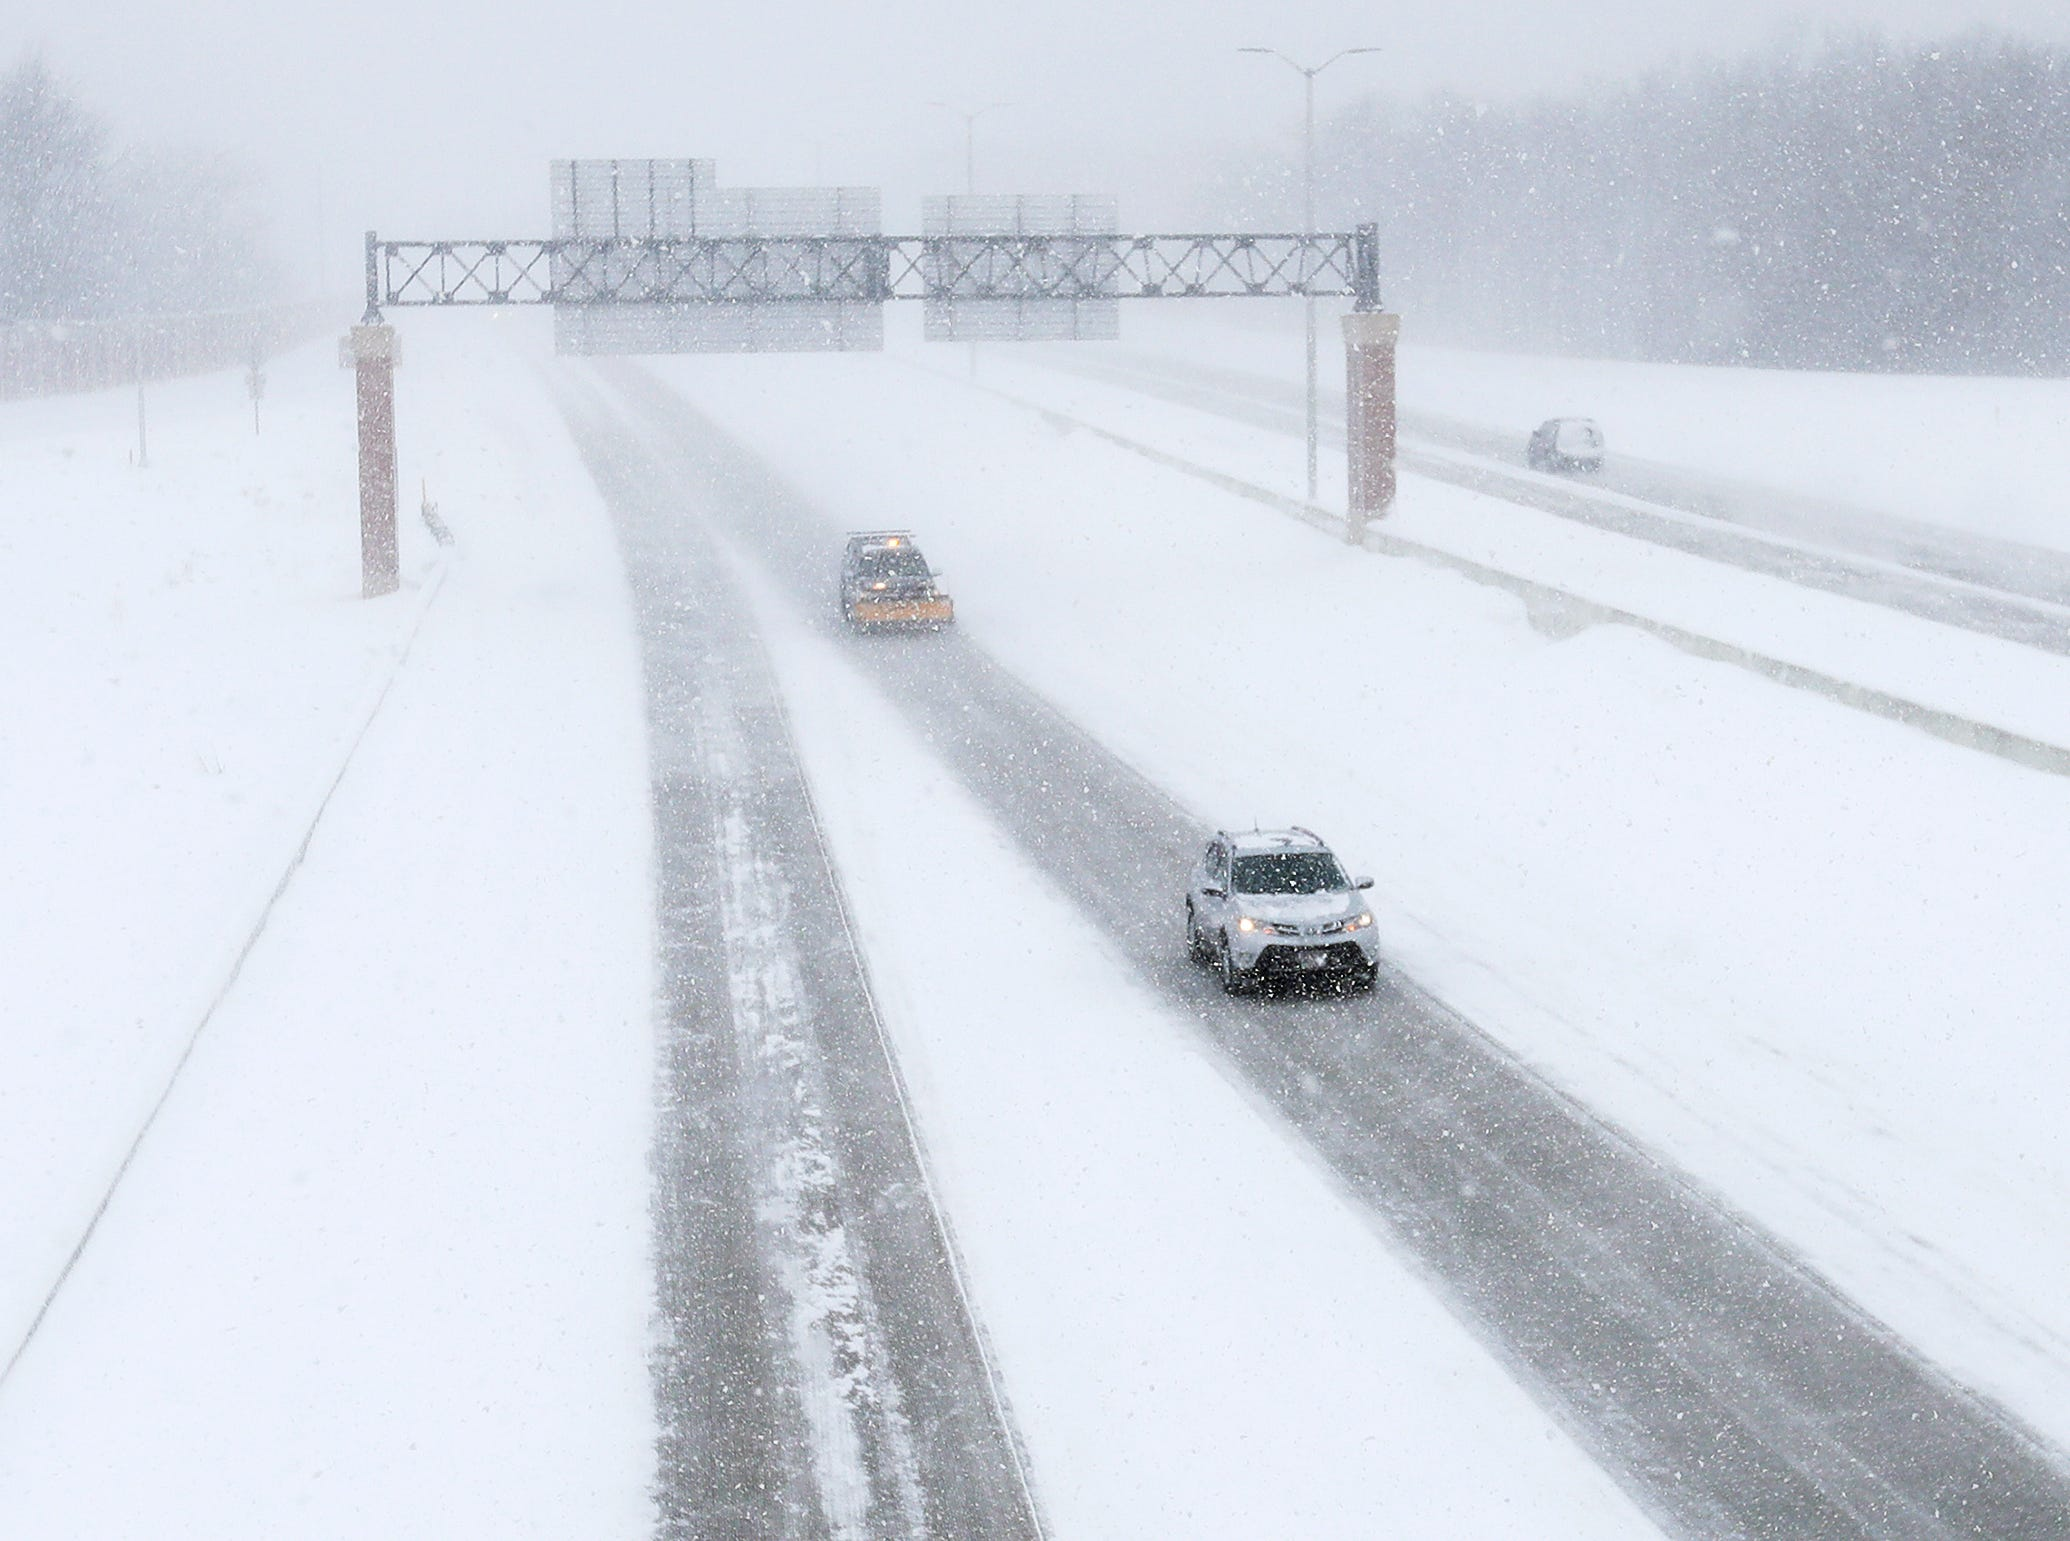 Traffic moves along I-41 during a snowstorm on Monday, January 28, 2019 in Green Bay, Wis.